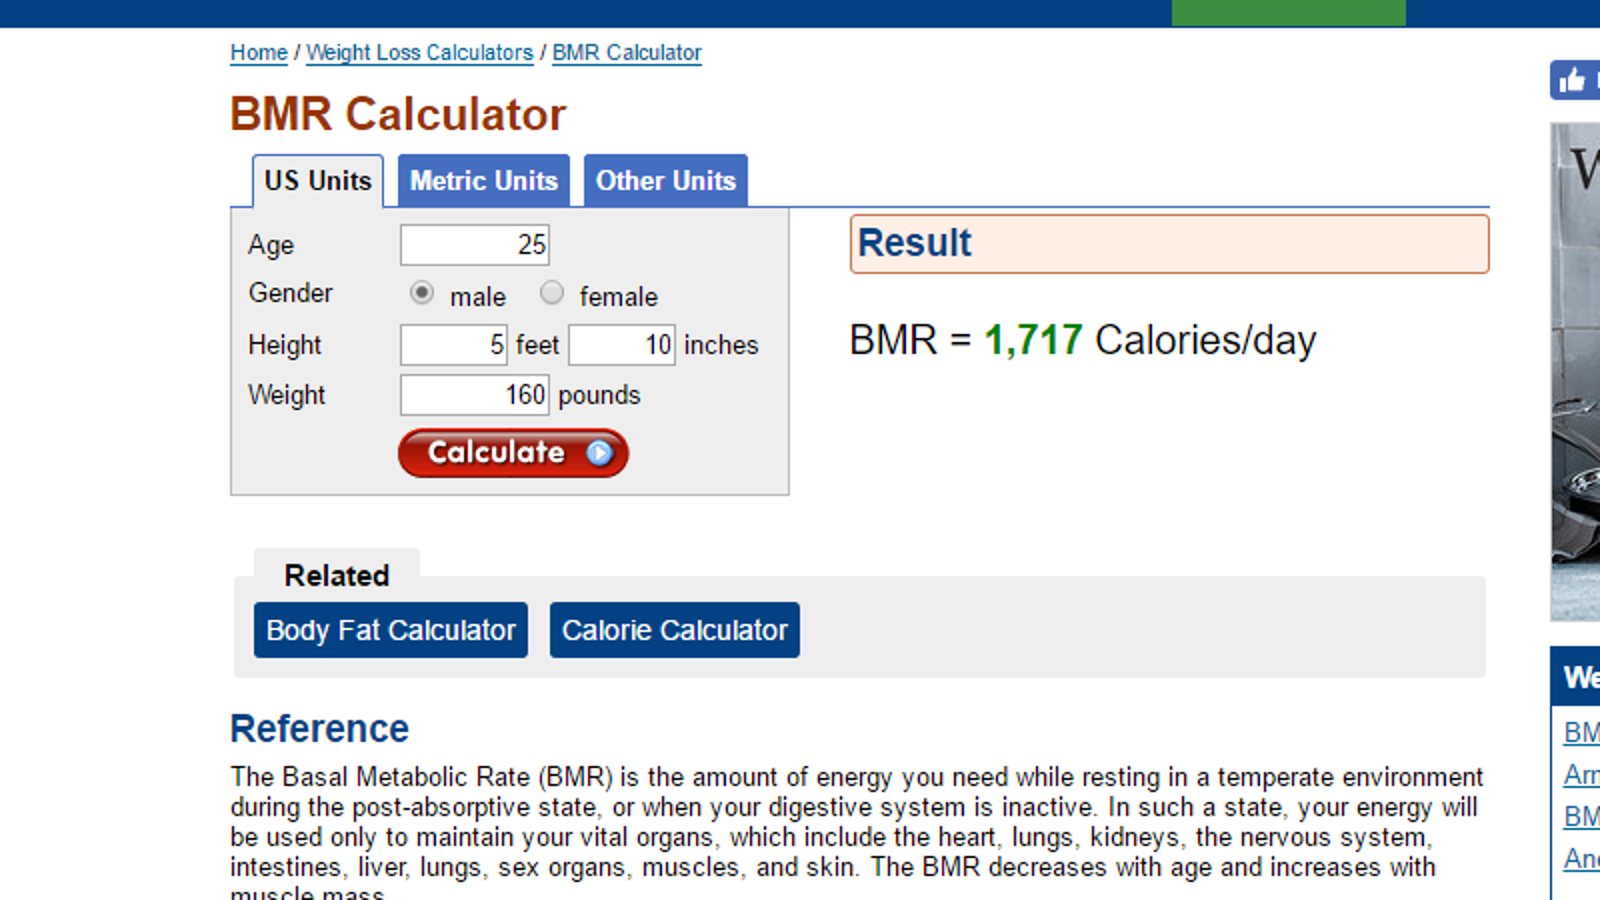 How many calories are wasted when walking